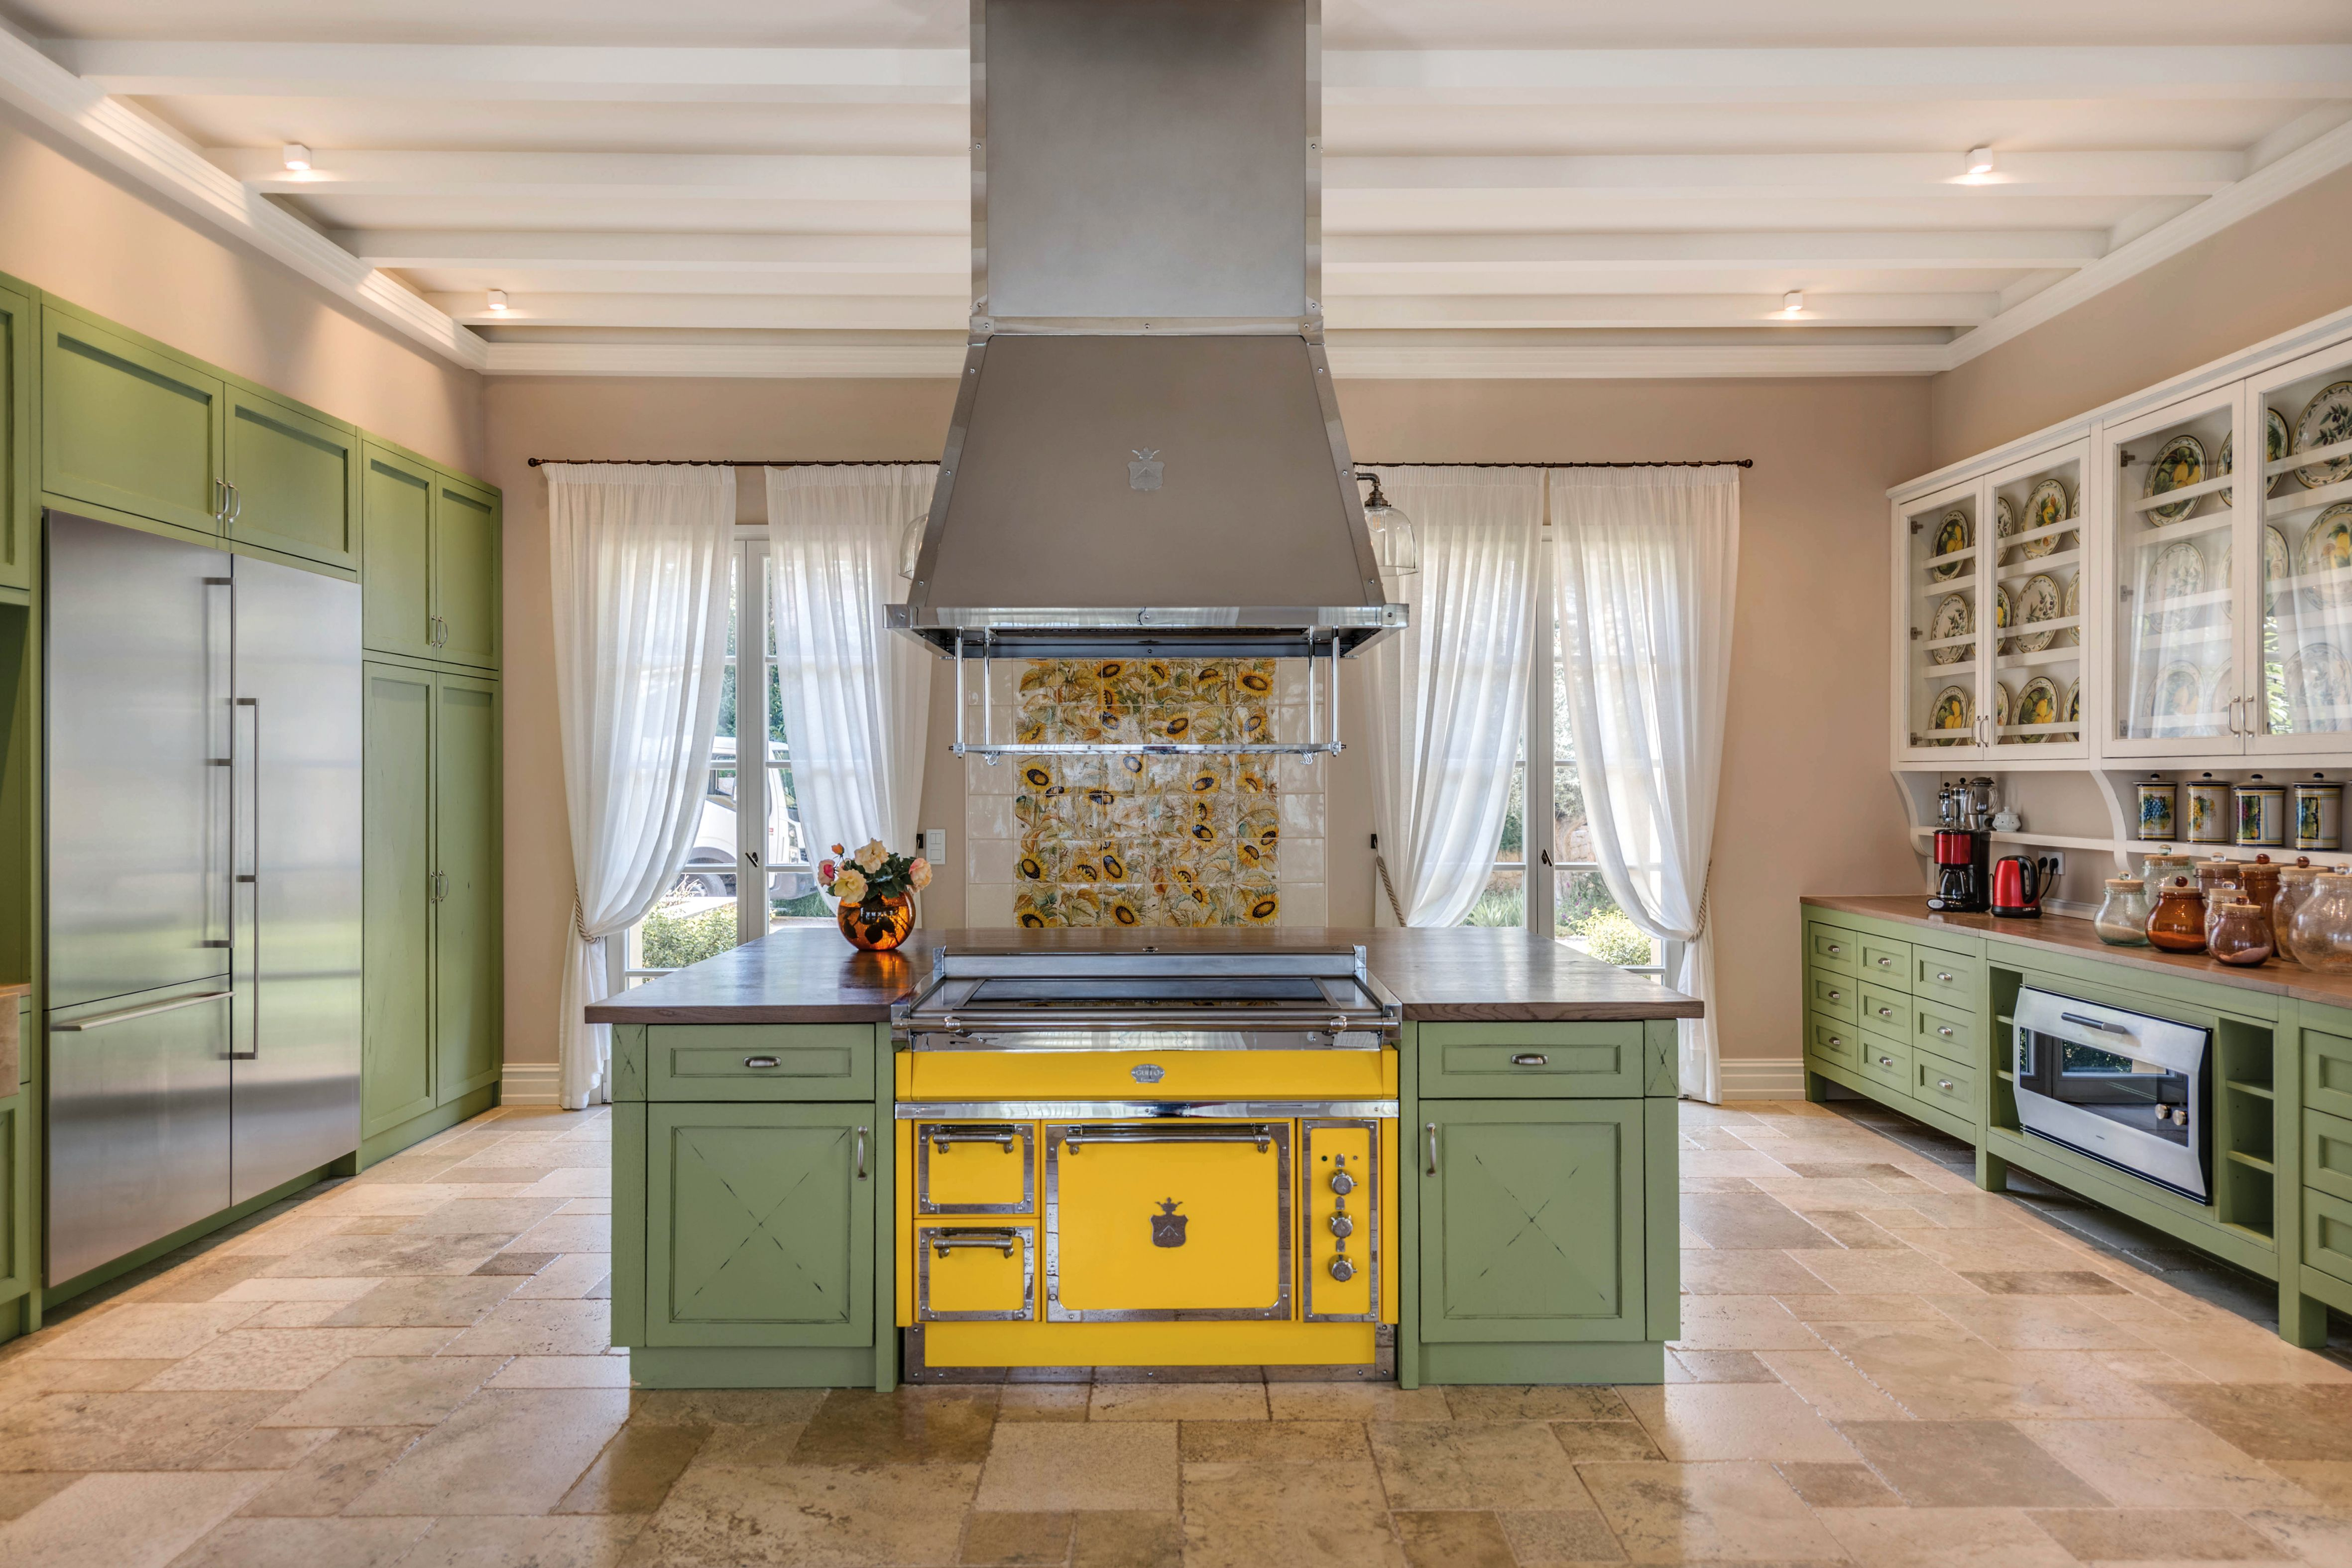 Cooking Suites And Components Officine Gullo In 2020 Kitchen Cabinet Design Cabinet Design Custom Kitchen Cabinets